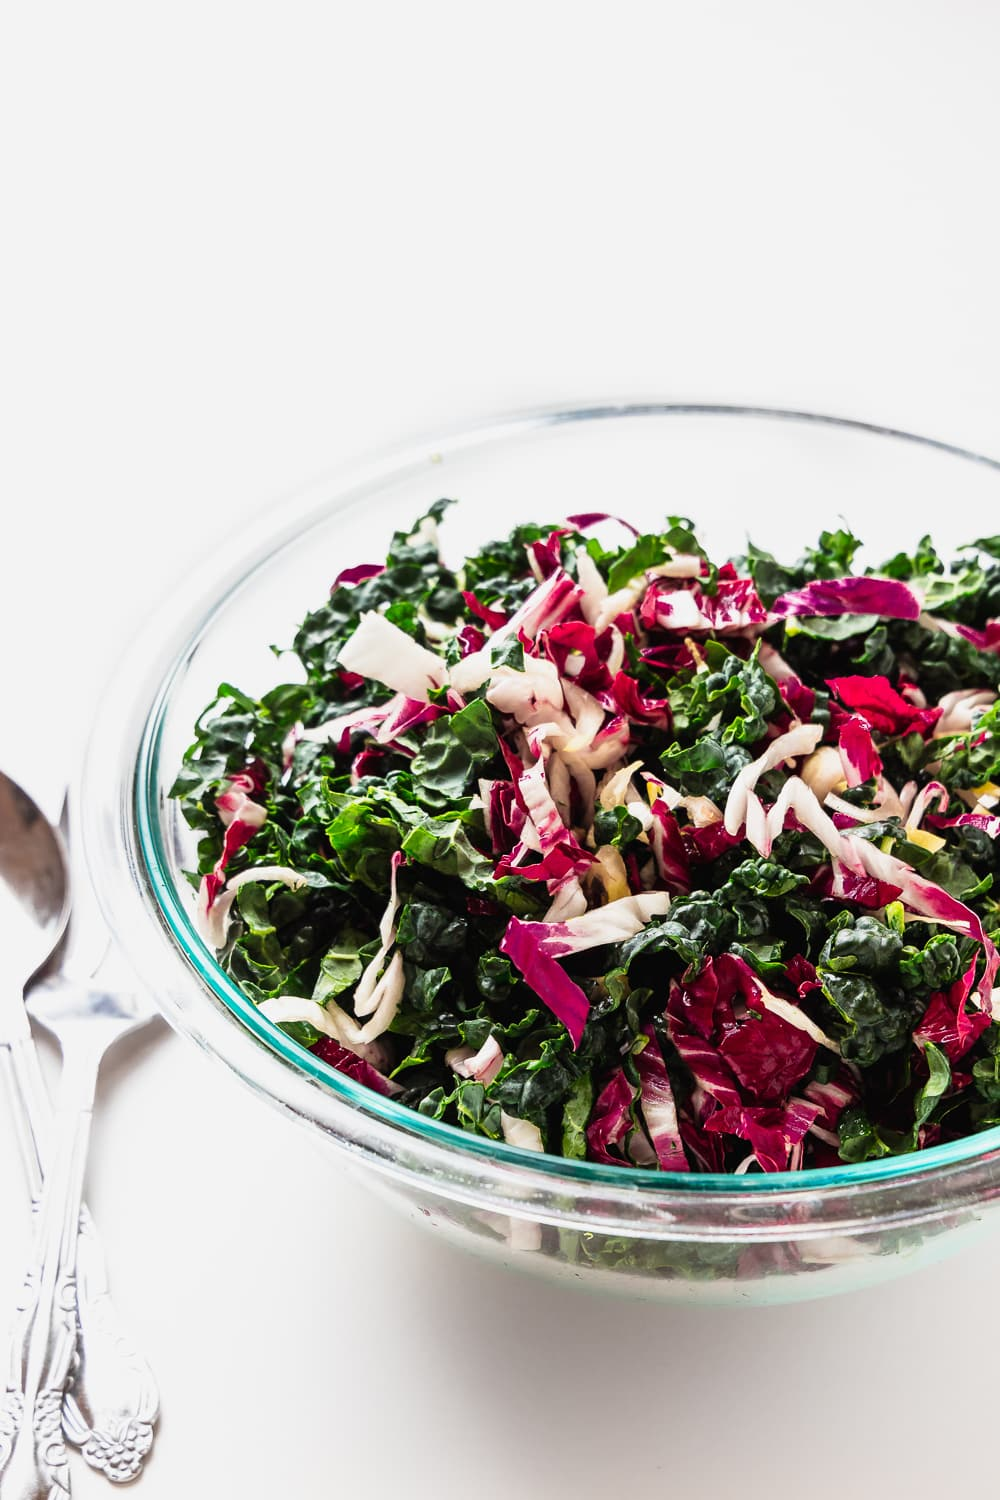 large glass bowl with shredded kale, radicchio and endive, mixed up. Serving utensils on the side